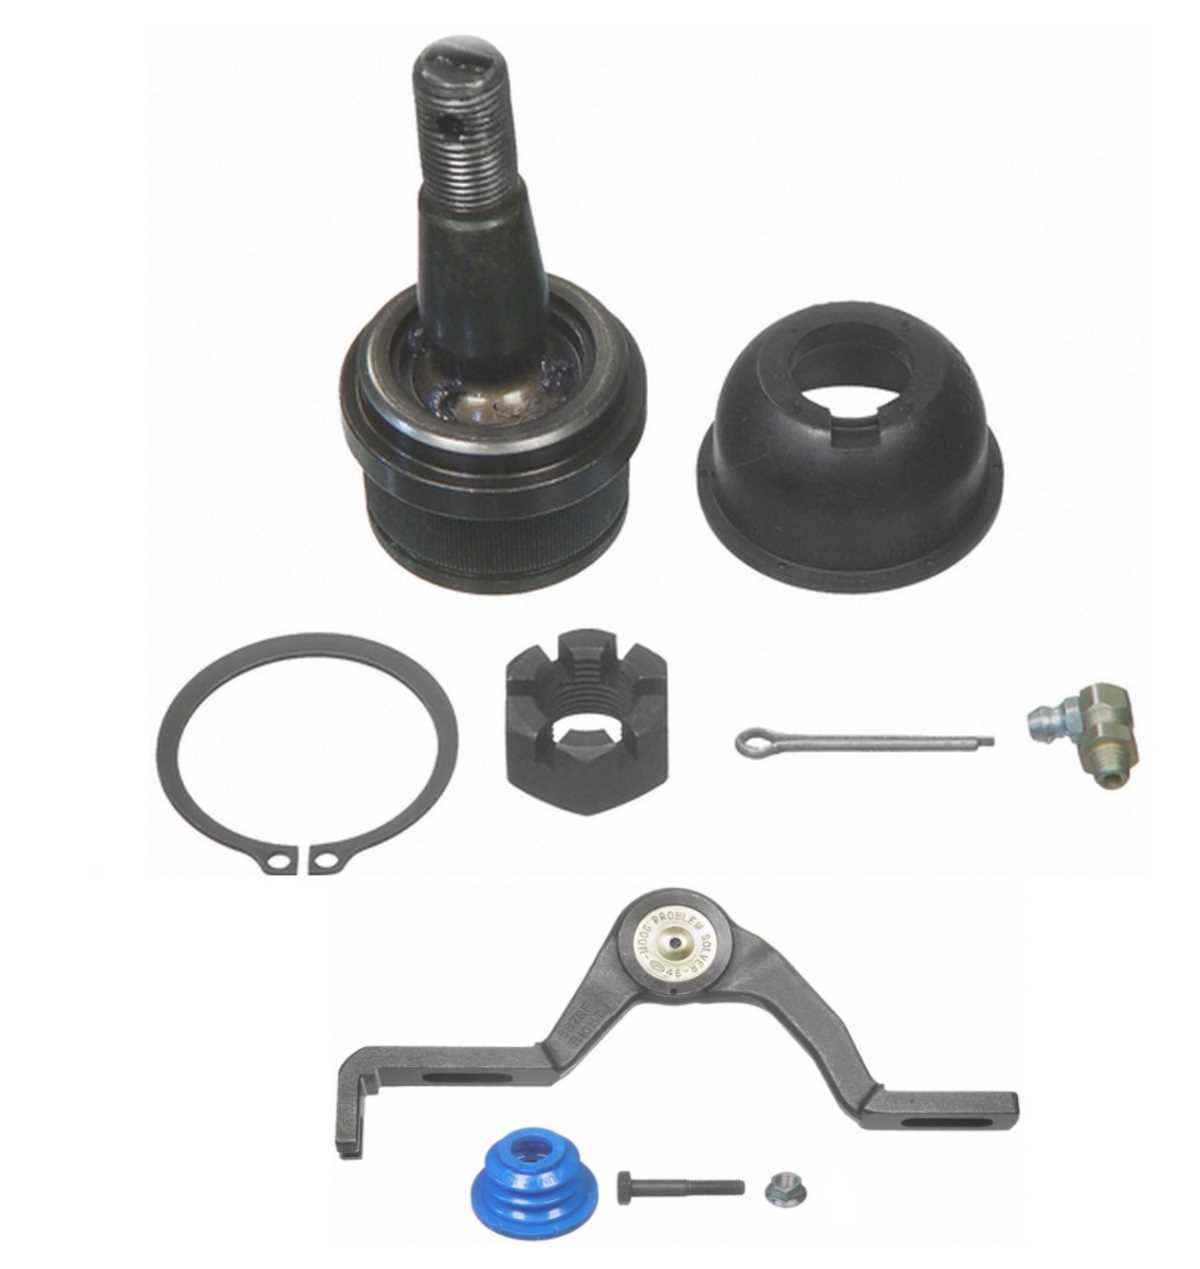 Prime Choice Auto Parts CK555-479 Set of Upper Control Arm and Lower Ball Joint